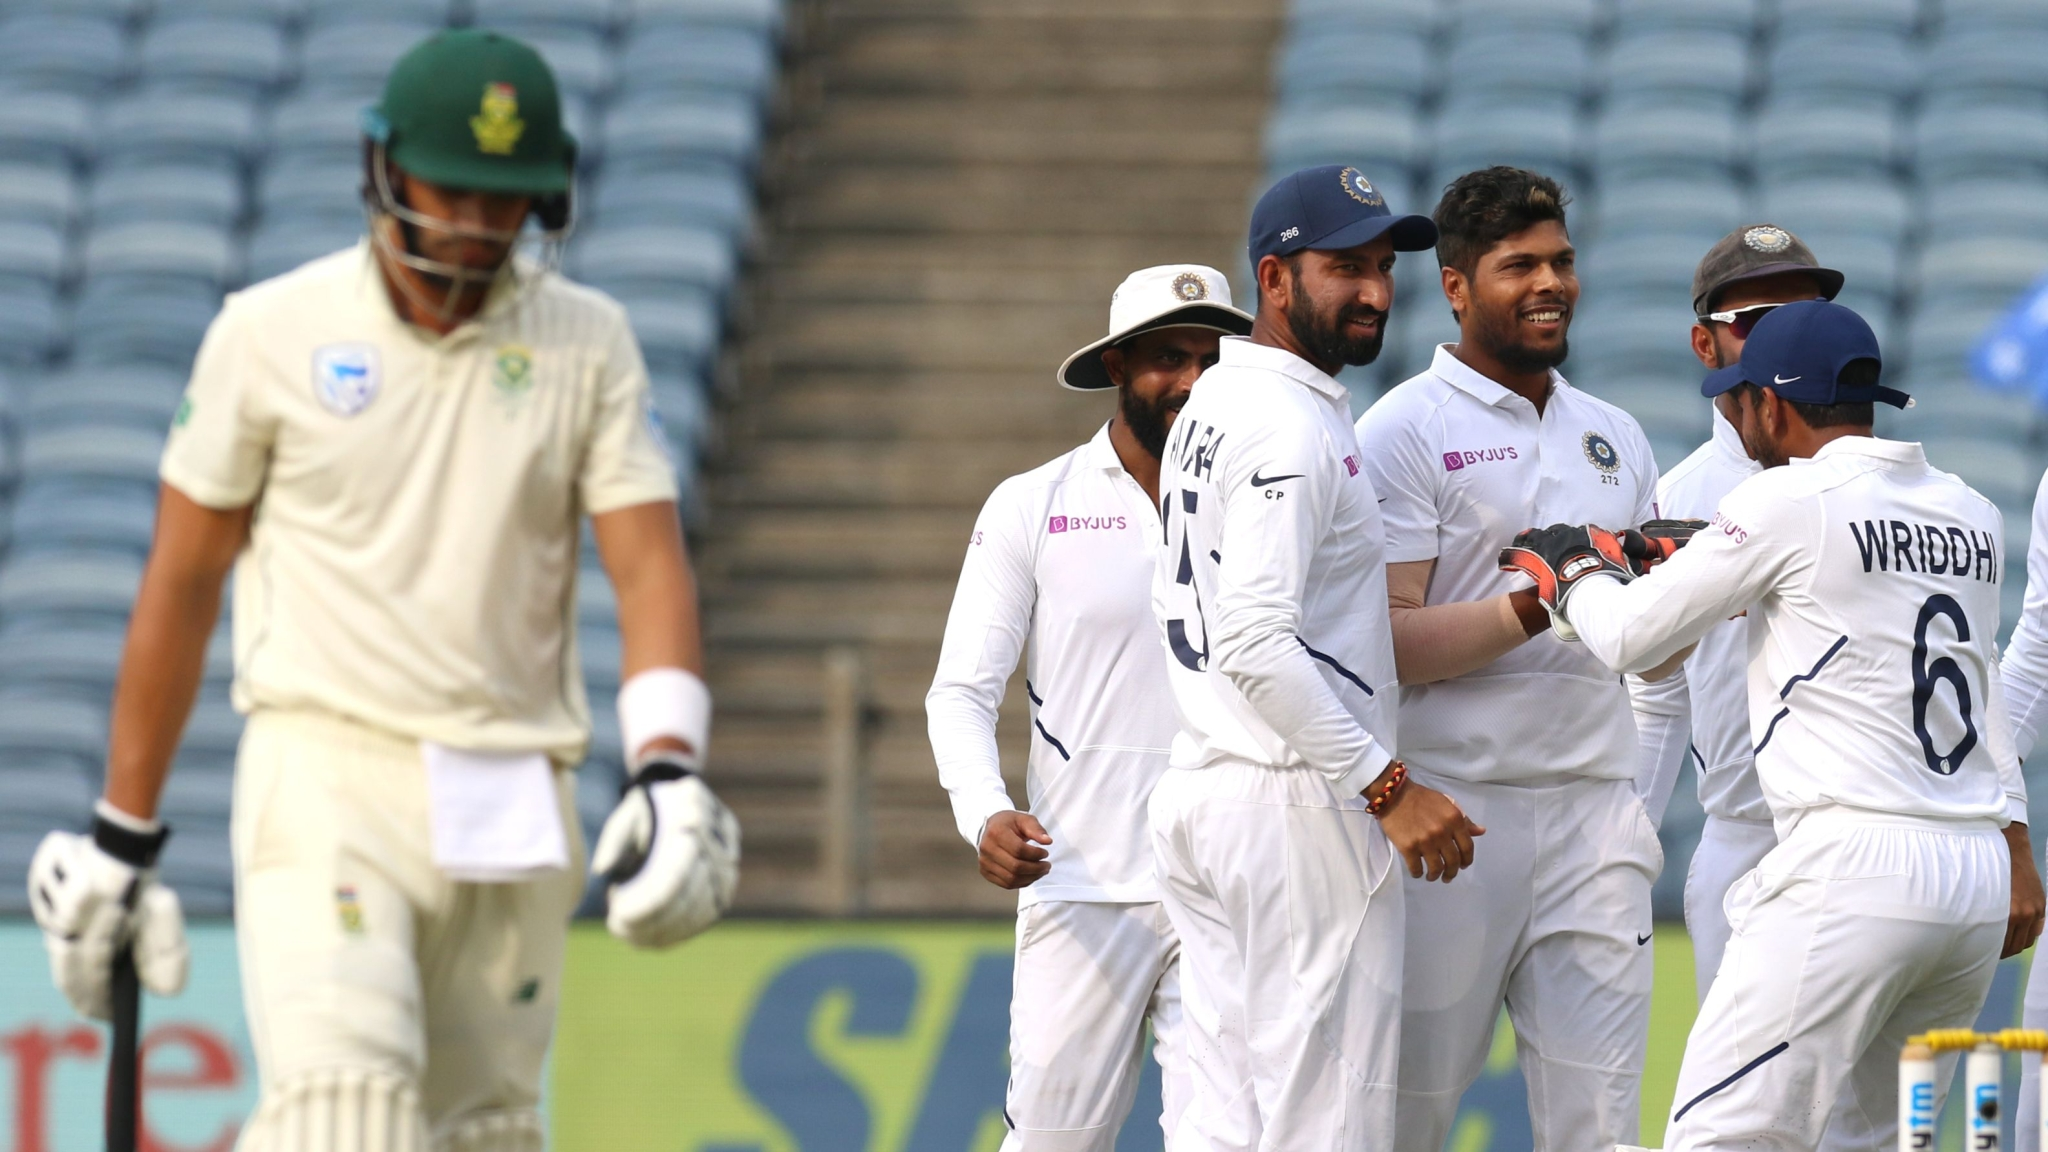 Pune Test, Day 2: SA 36/3 at Stumps, Trail India by 565 Runs